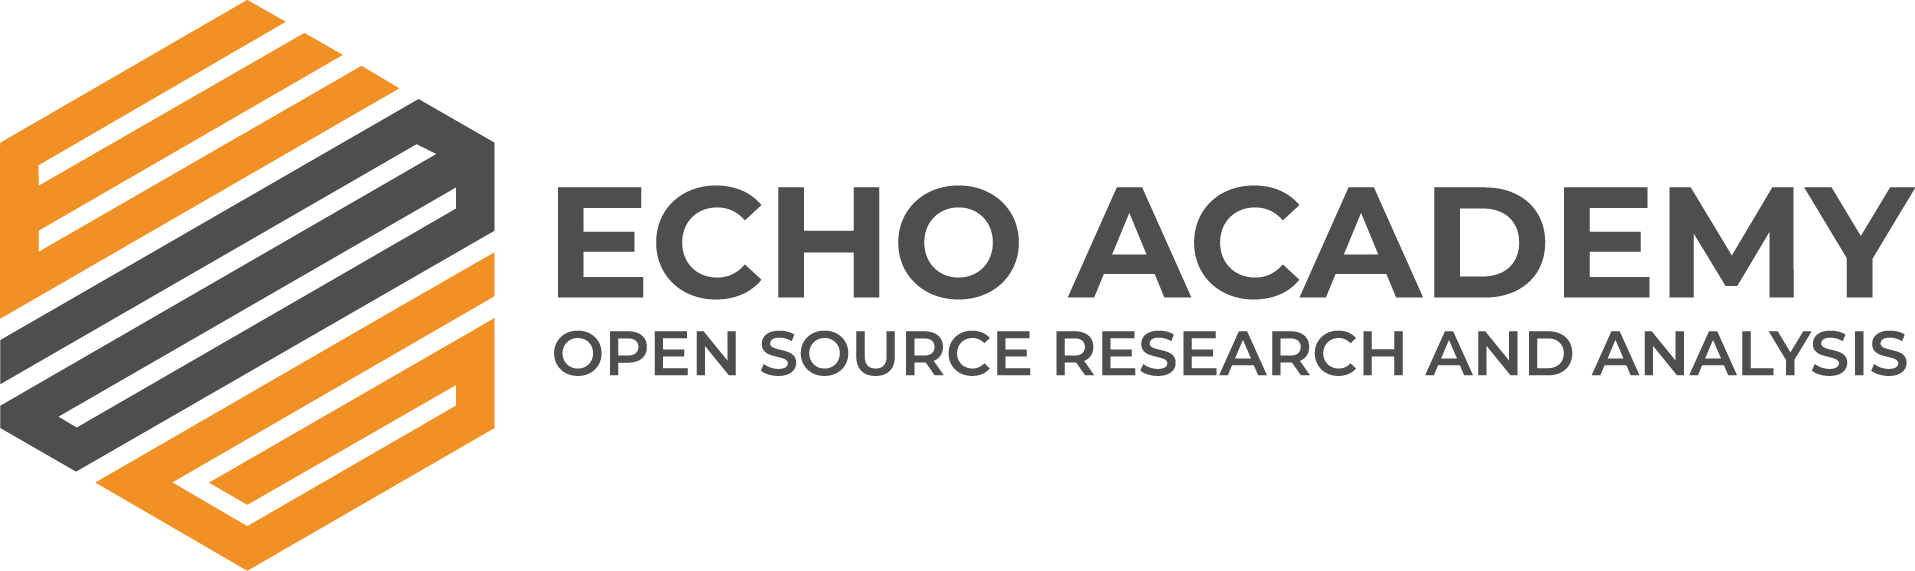 Echo Academy of Open Source Intelligence Research and Analysis